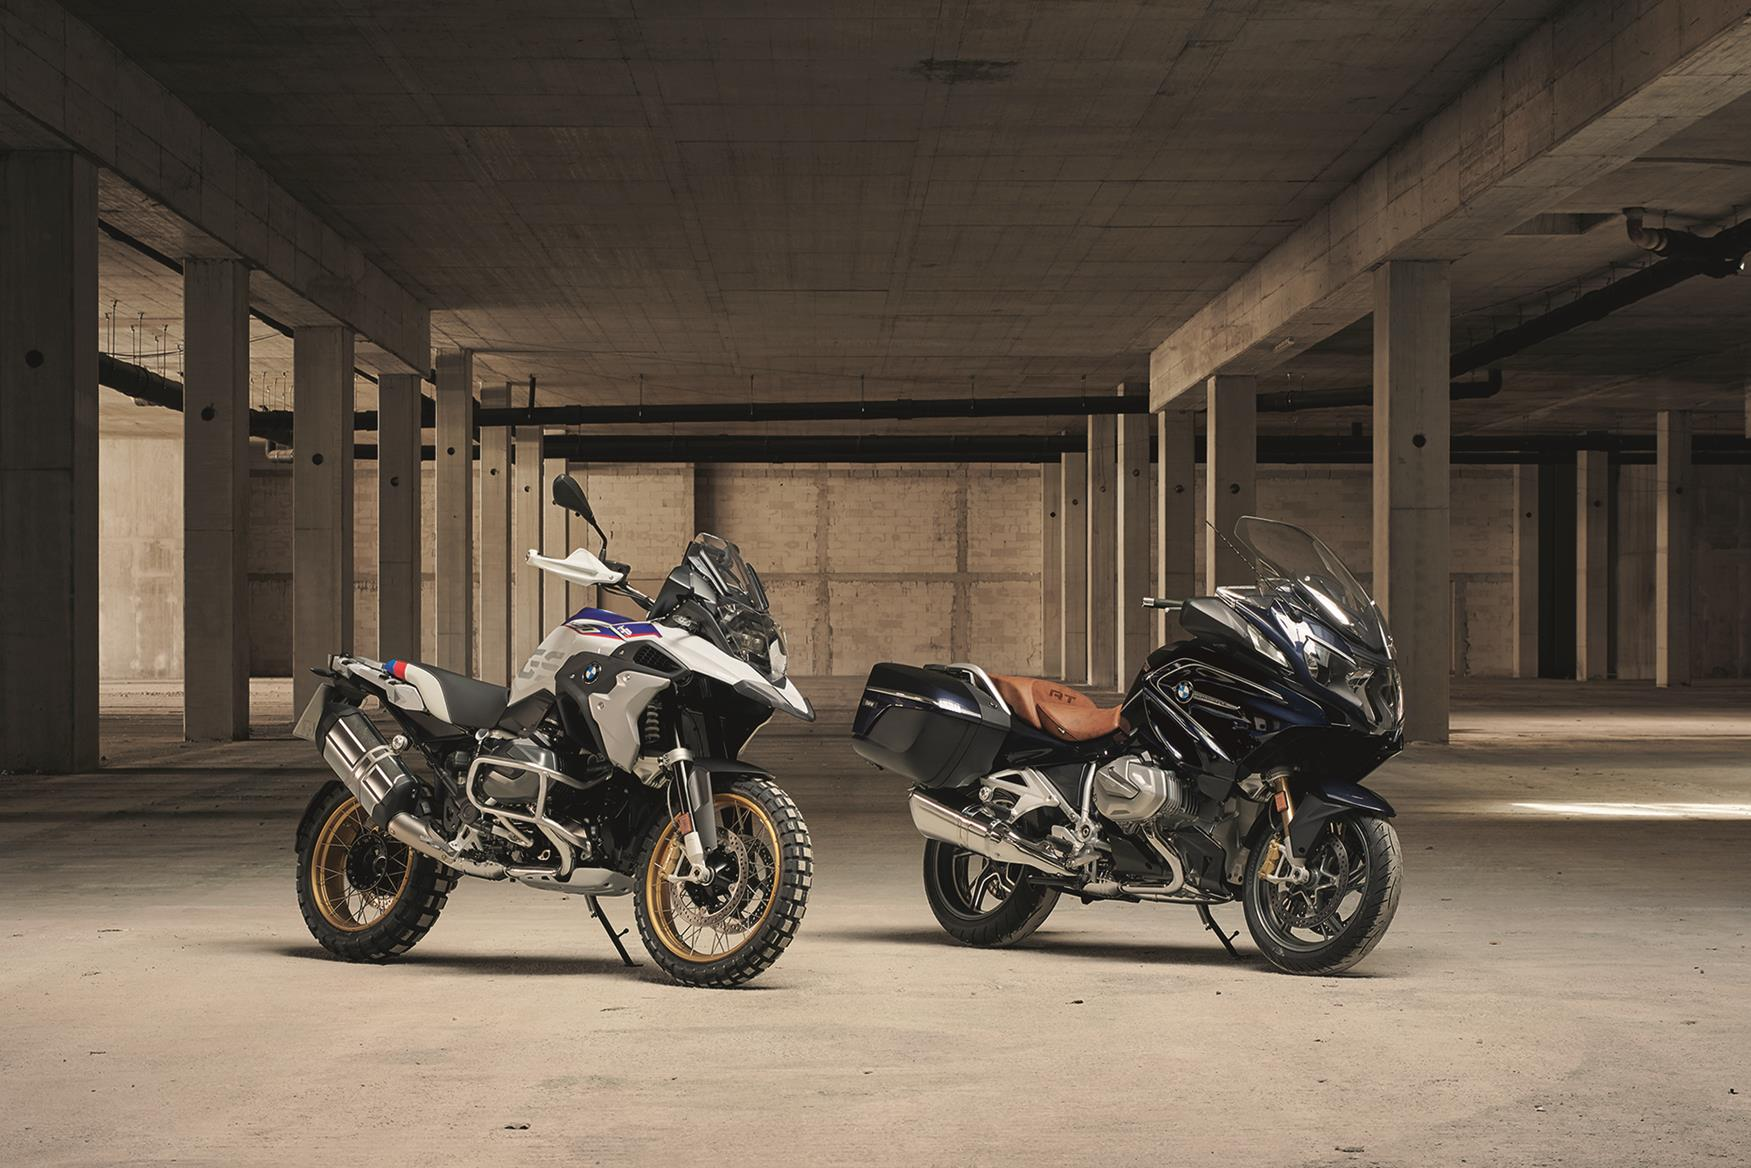 BMW release full details of 2019 R1250GS